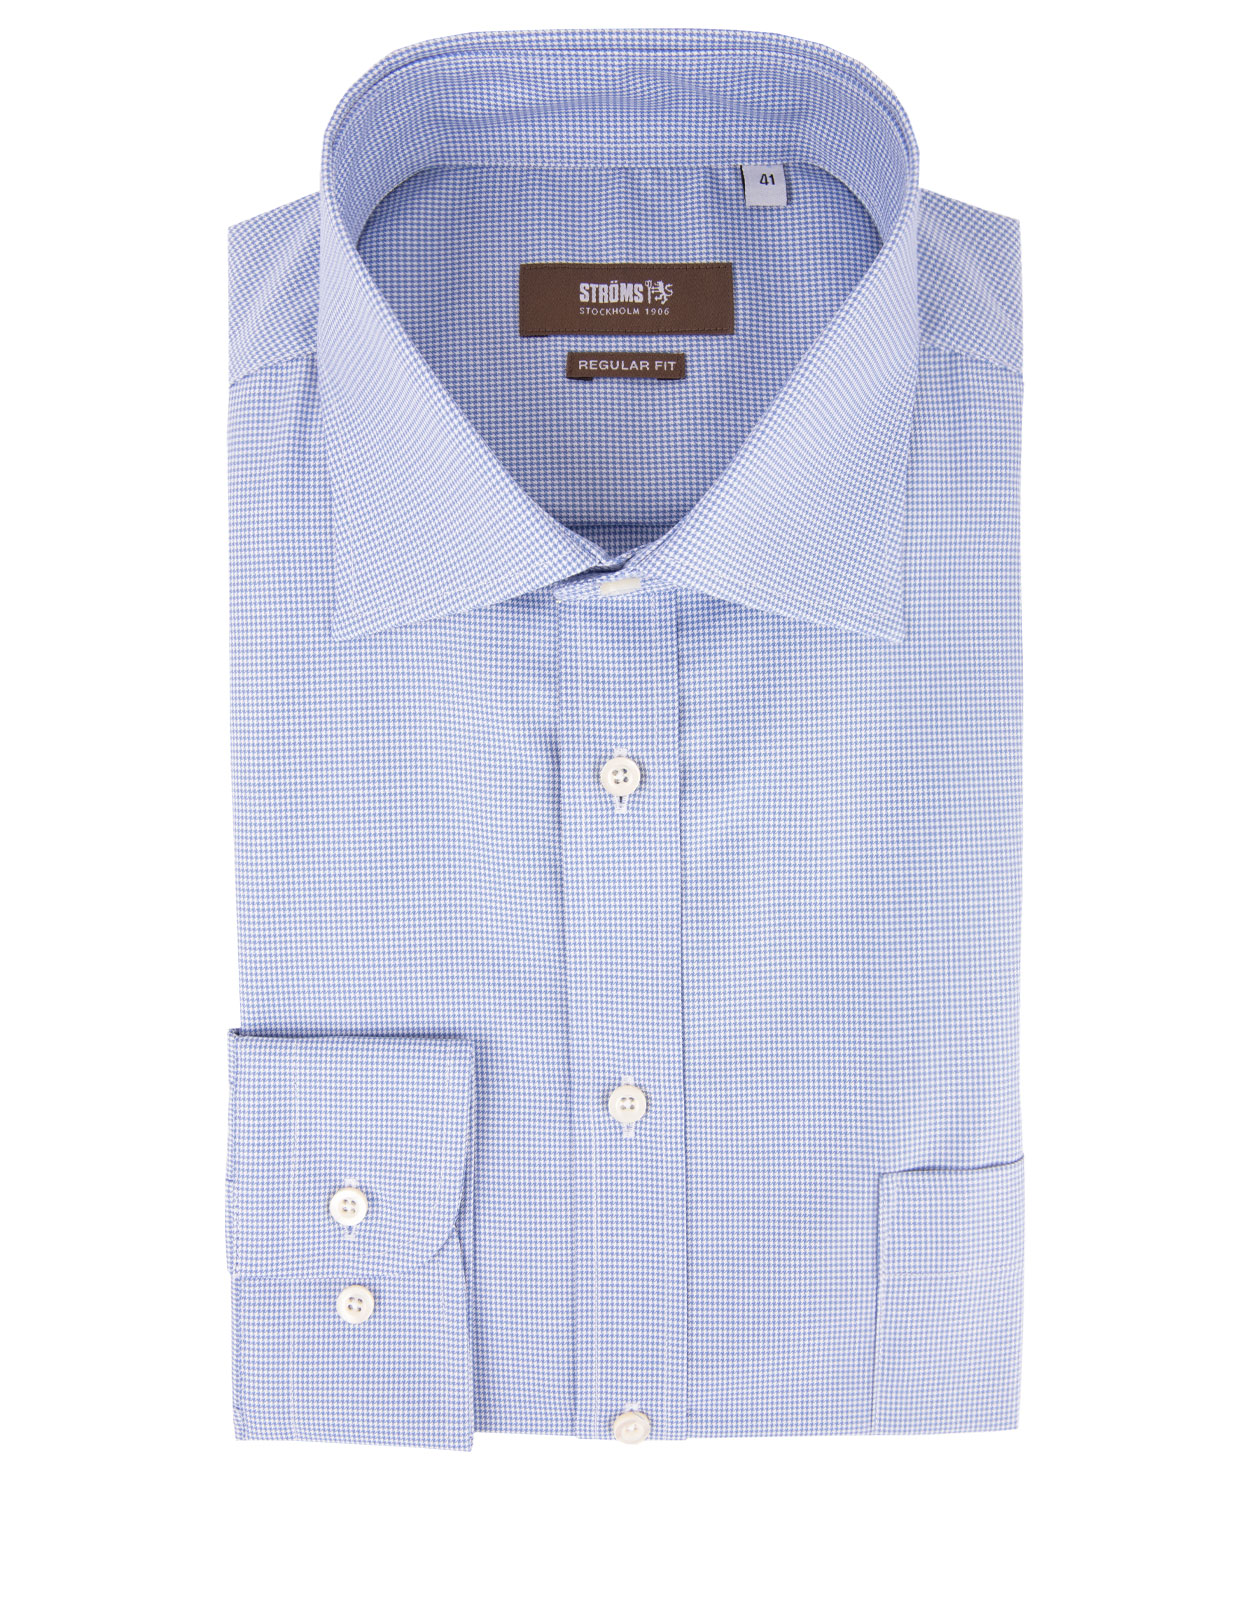 Regular Fit Cotton Shirt Pepita Check Blue